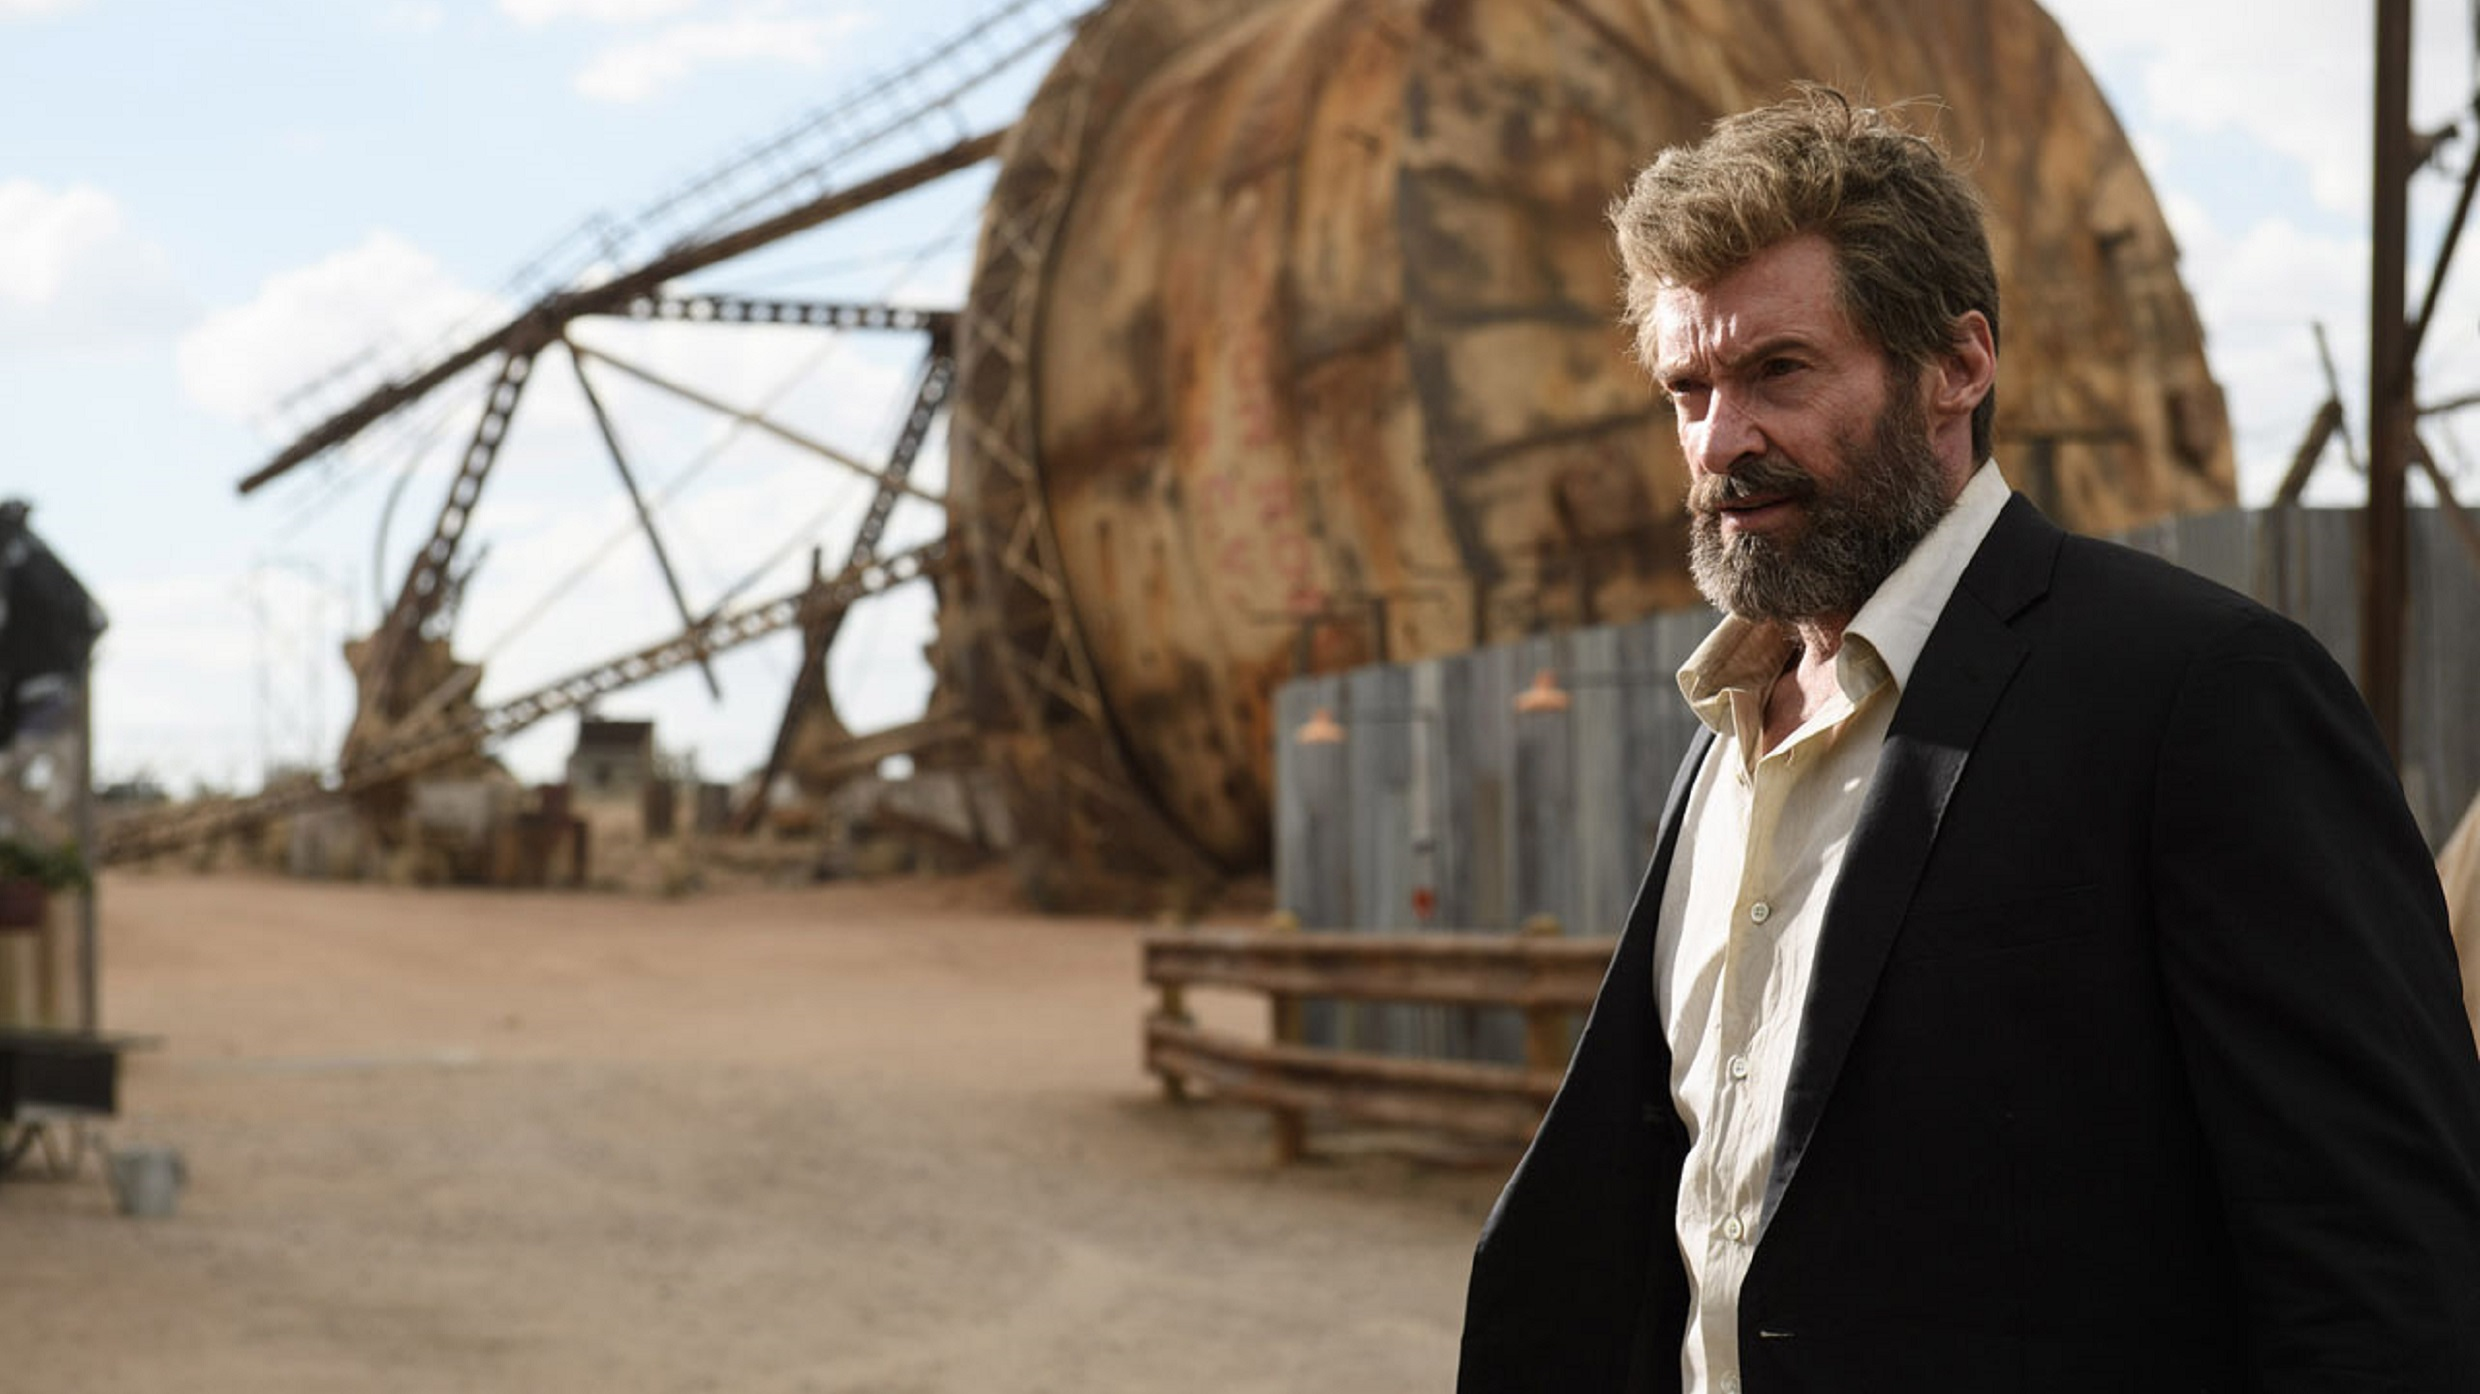 Logan Tops the Box Office with a New March Record